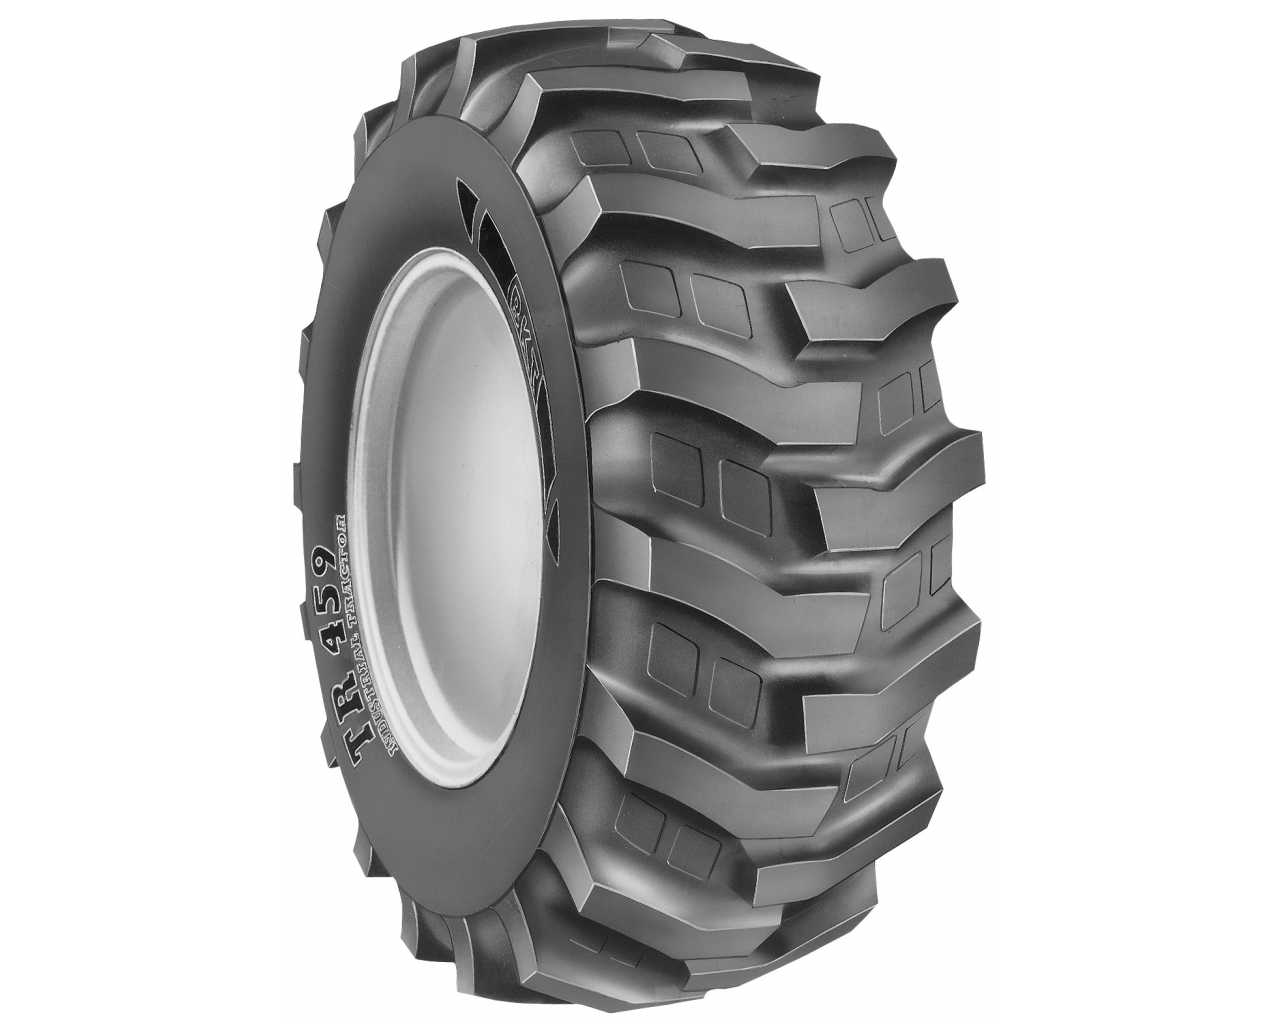 Tire Compare Sizes >> 16.9X28 BKT TR-459 12PR TL - Buy online at Agrigear, Ireland's tyre and wheel specialists